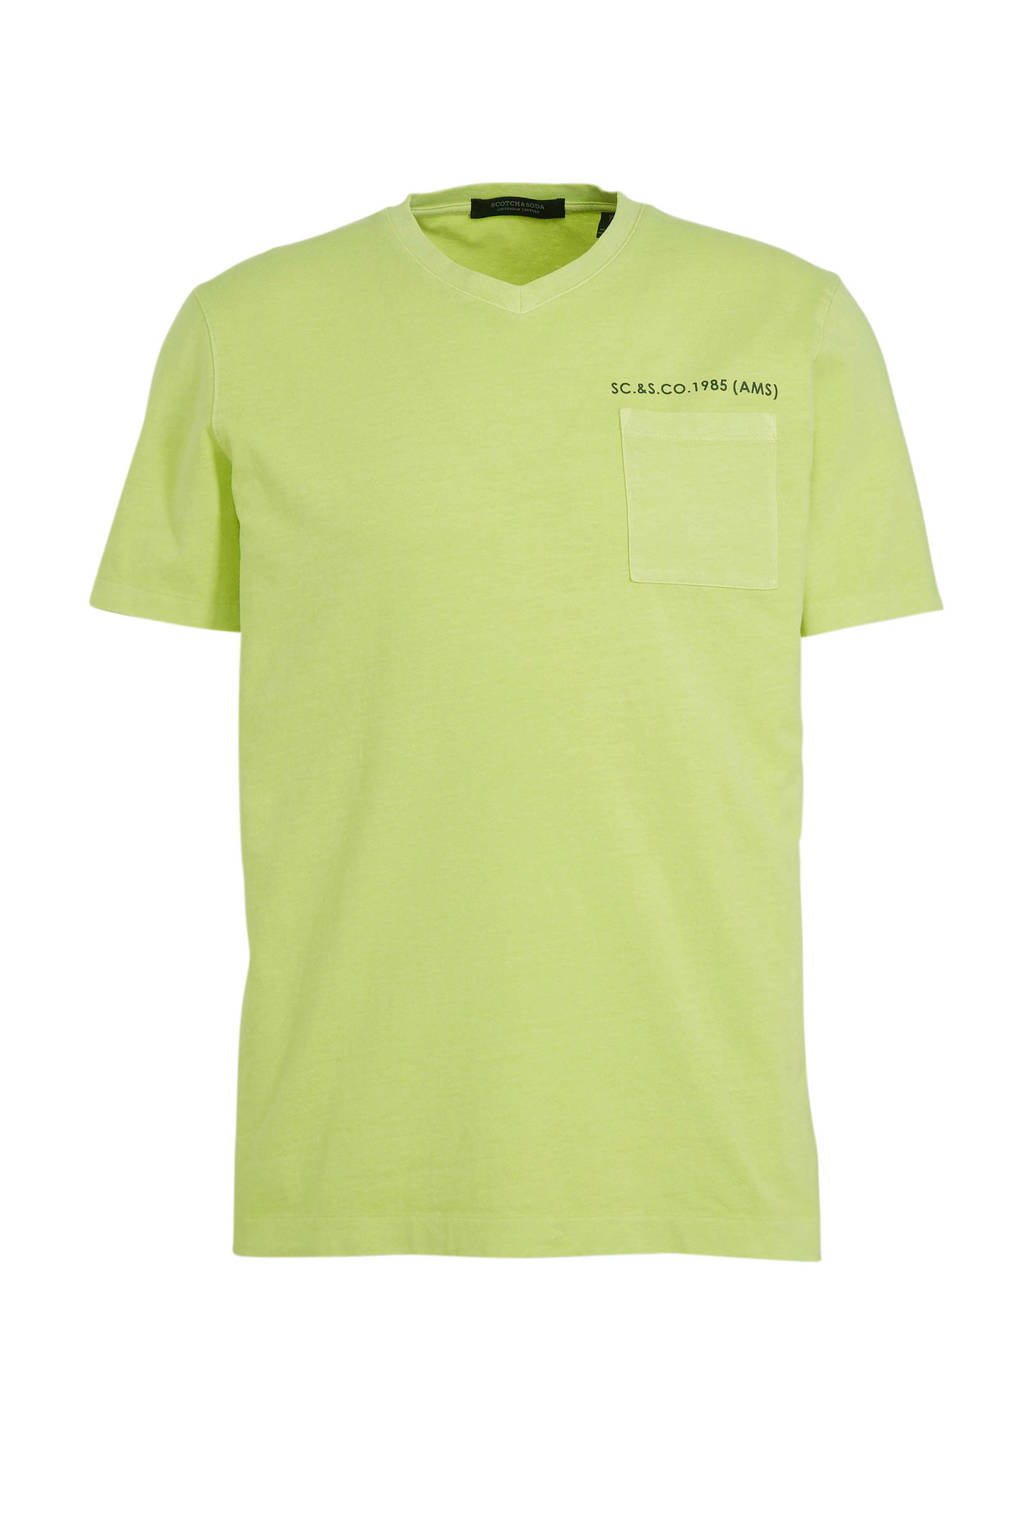 Scotch & Soda T-shirt lemongrass, Lemongrass